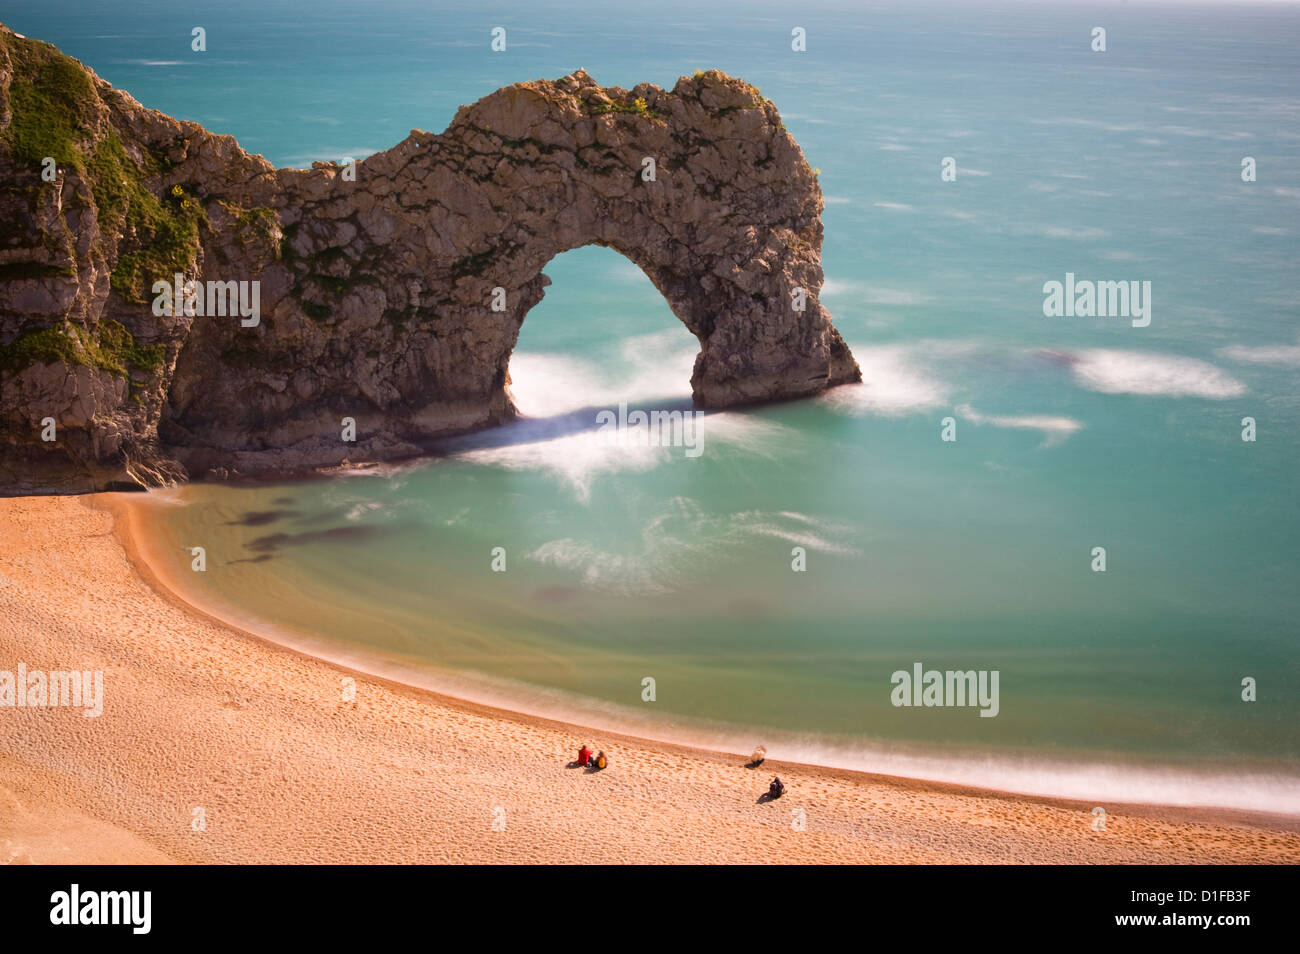 Durdle Door, a natural stone arch in the sea, Lulworth, Isle of Purbeck, Jurassic Coast, Dorset, England, United - Stock Image